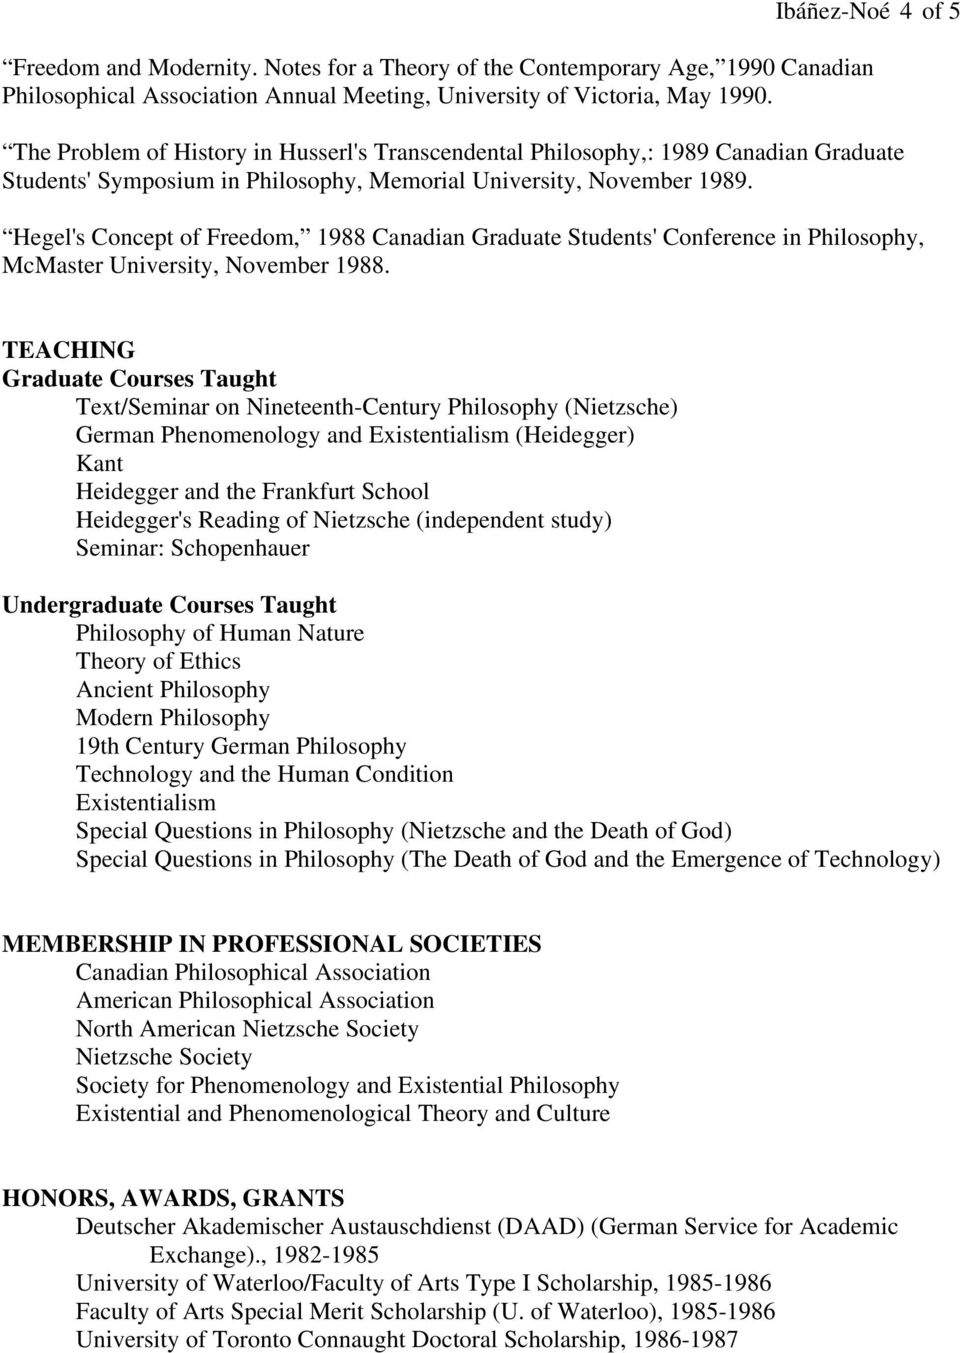 Hegel's Concept of Freedom, 1988 Canadian Graduate Students' Conference in Philosophy, McMaster University, November 1988.